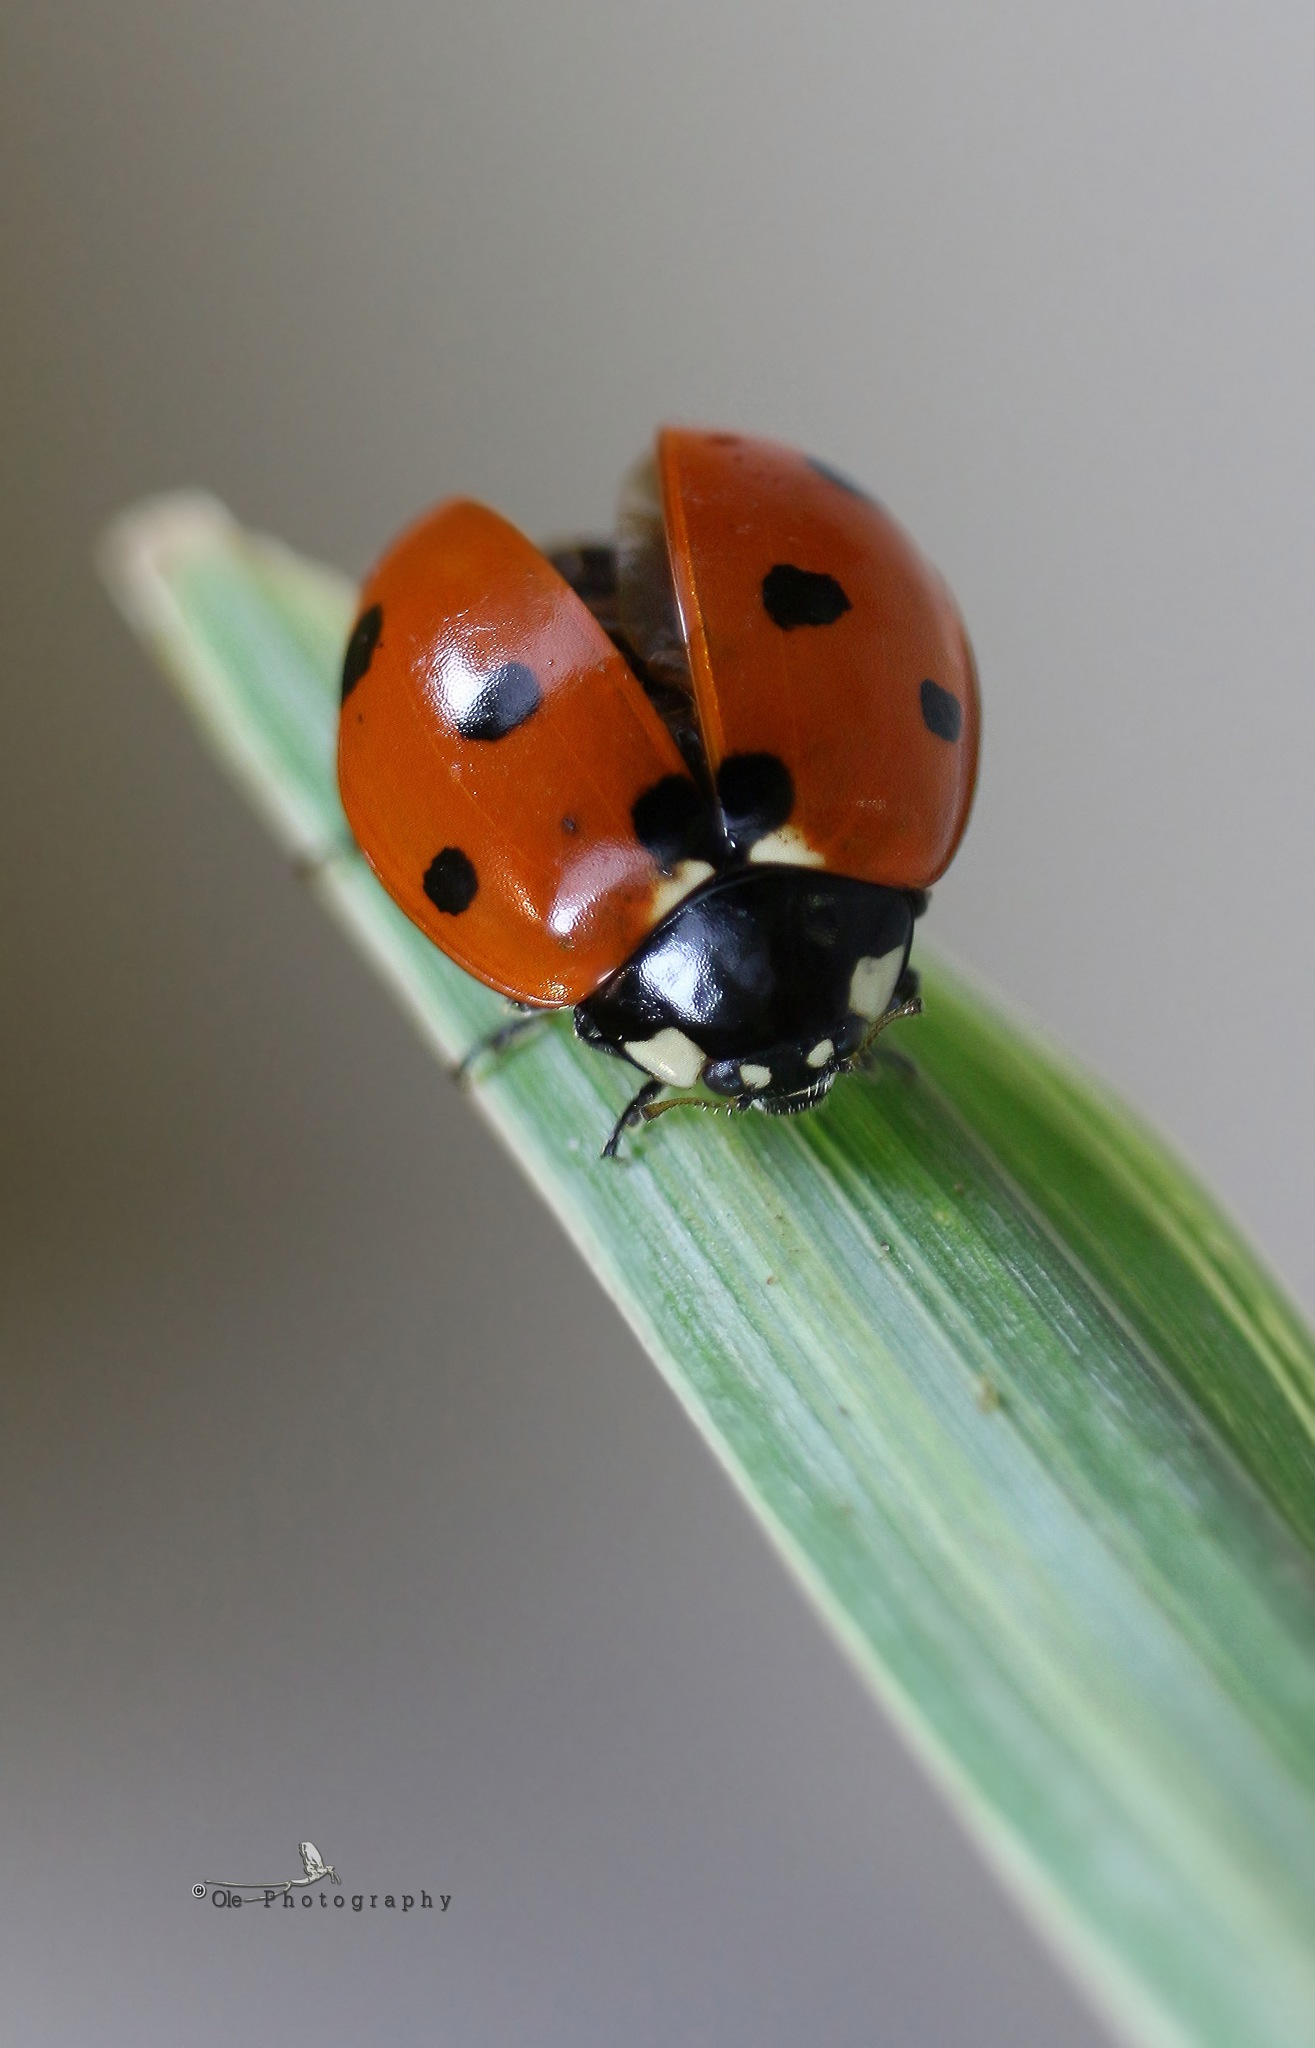 Coccinella septempunctata by OlePhotography